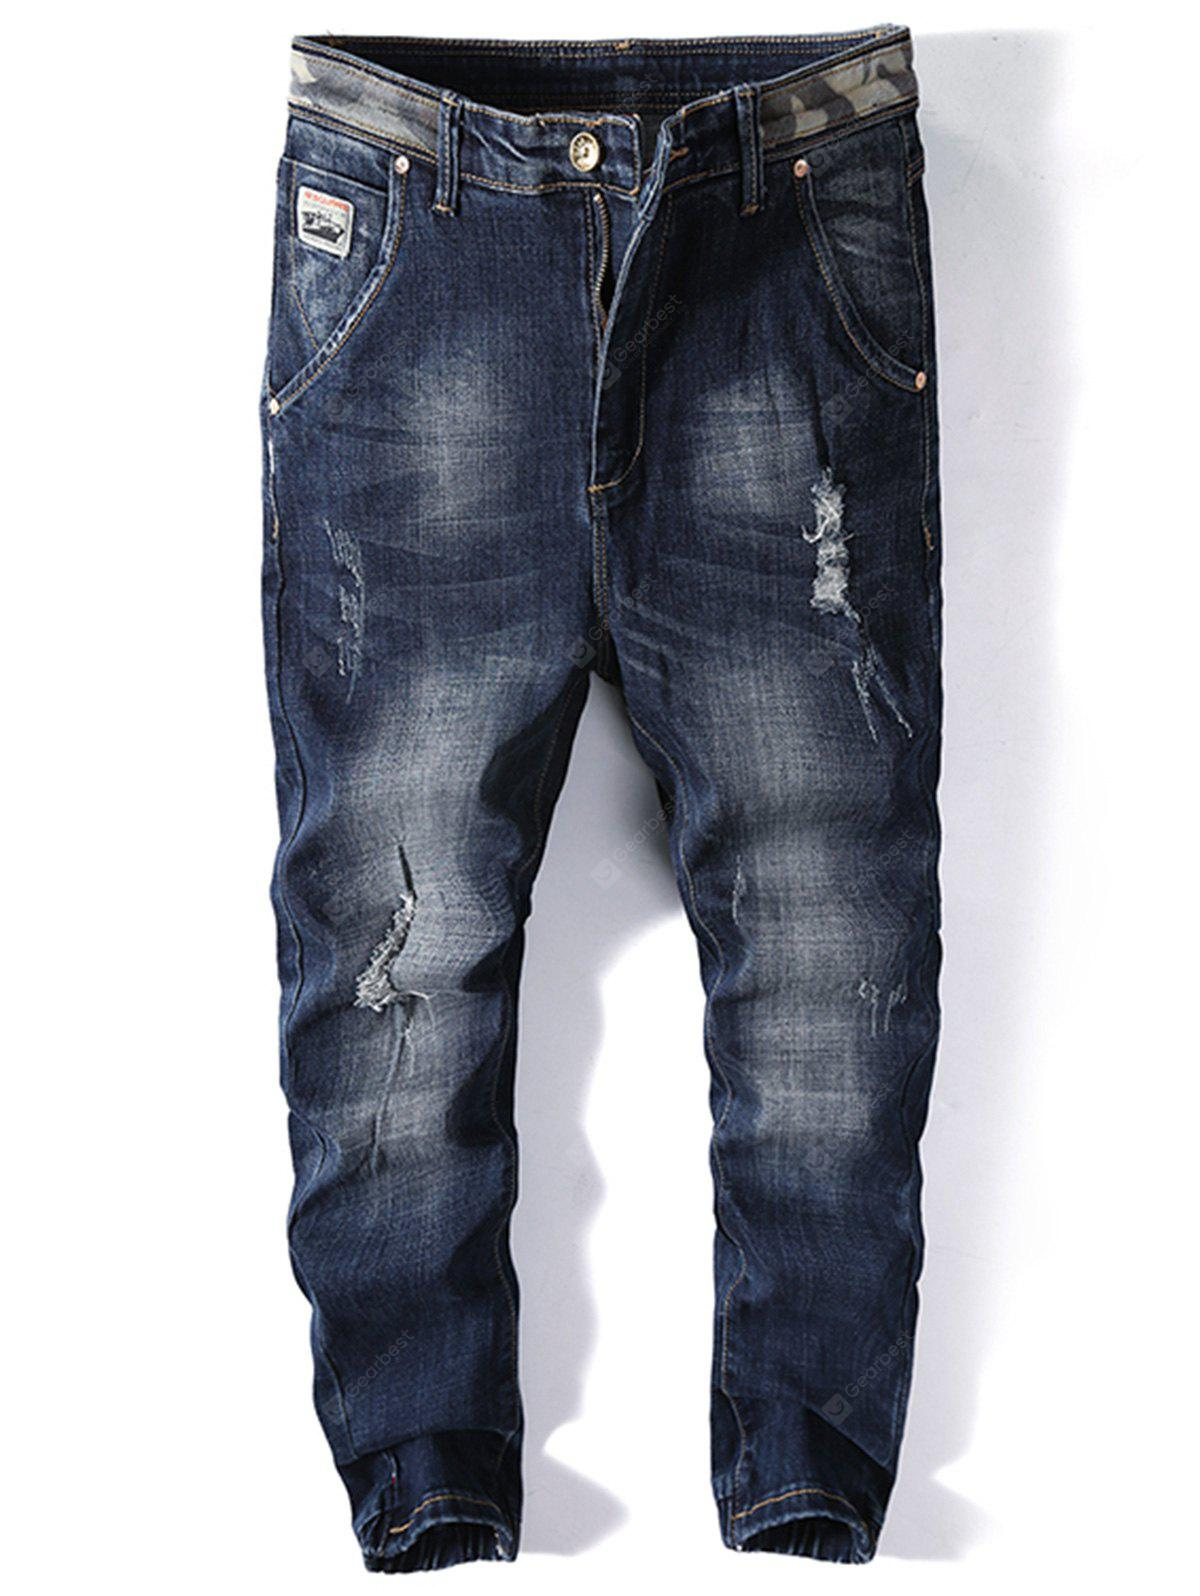 Patched Ripped Jogger Jeans 4196 Free Shipping Joger Riped